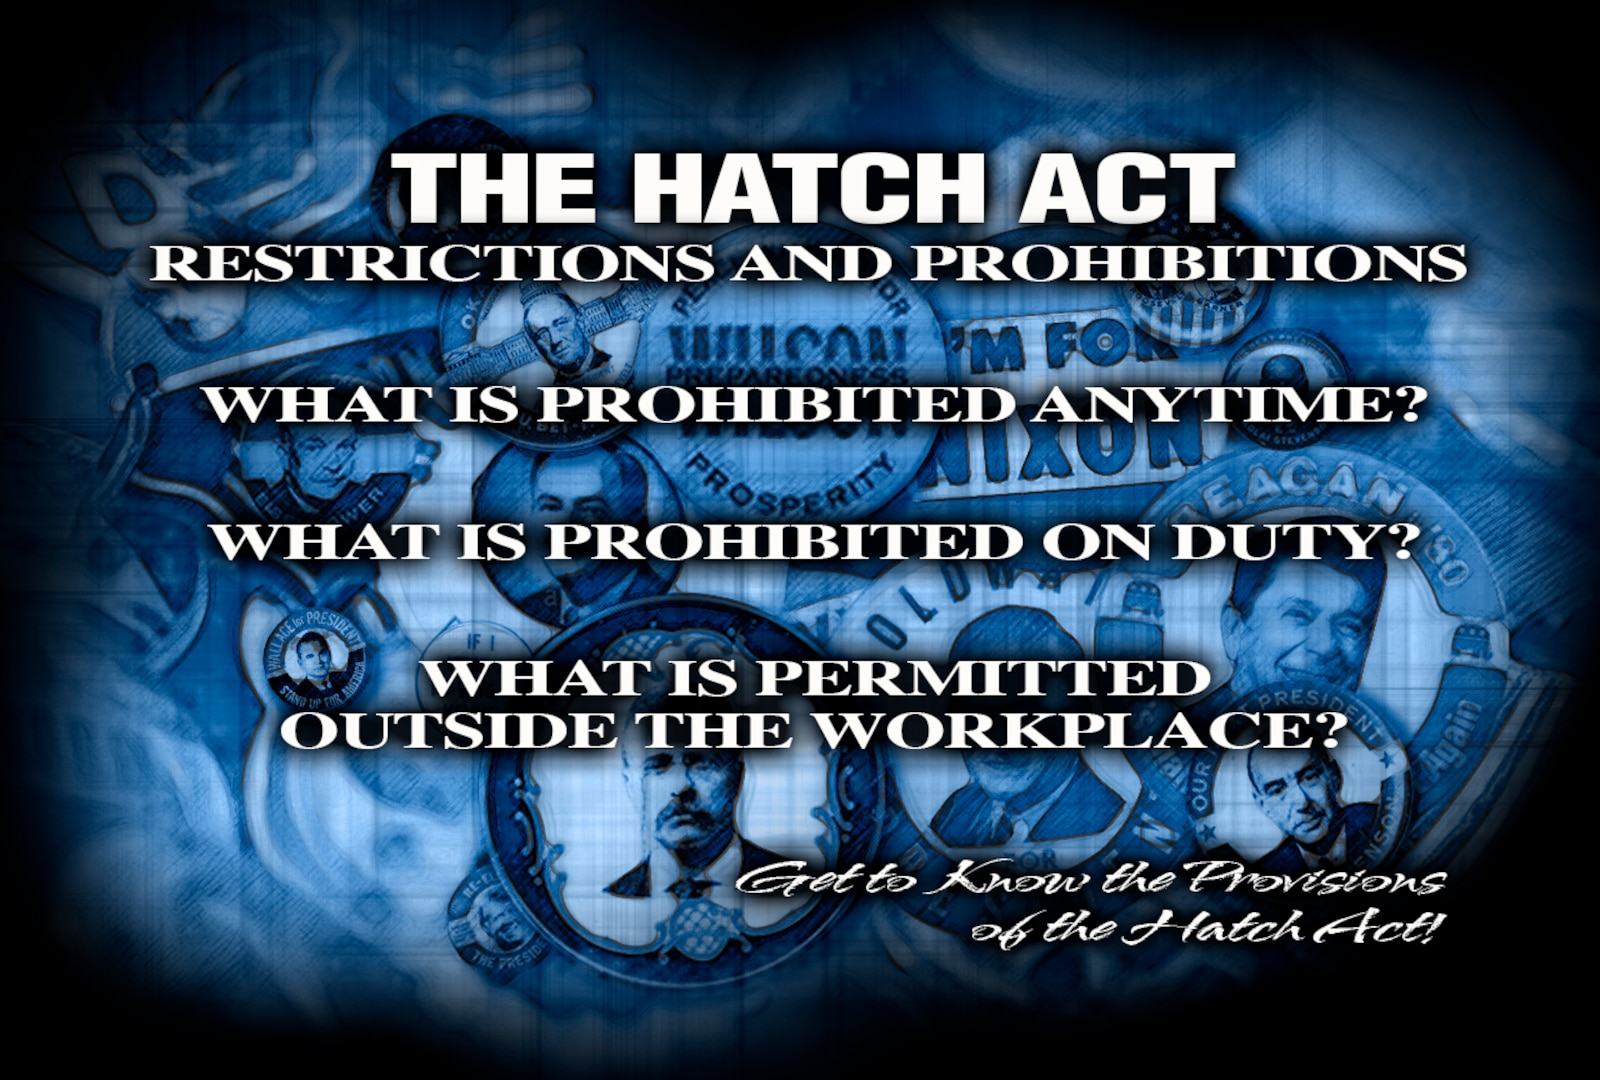 Hatch Act logo